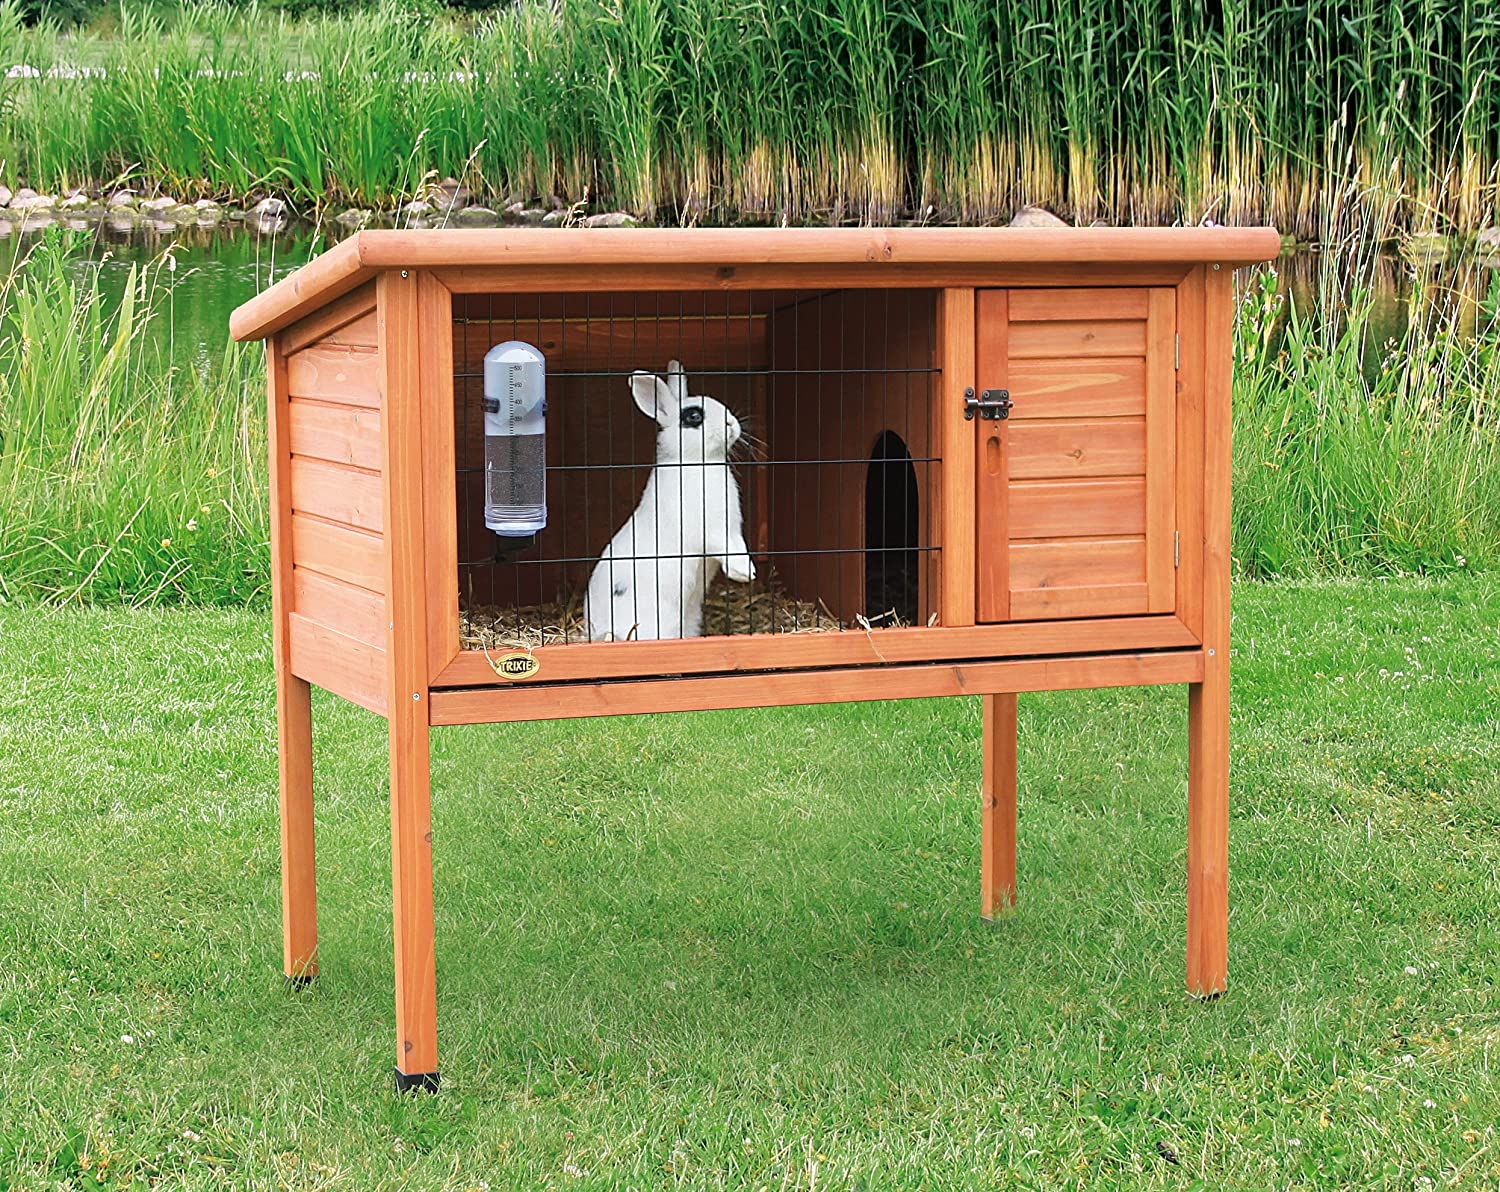 How to Build a DIY Rabbit Hutches in Four Easy Steps Cross Roads